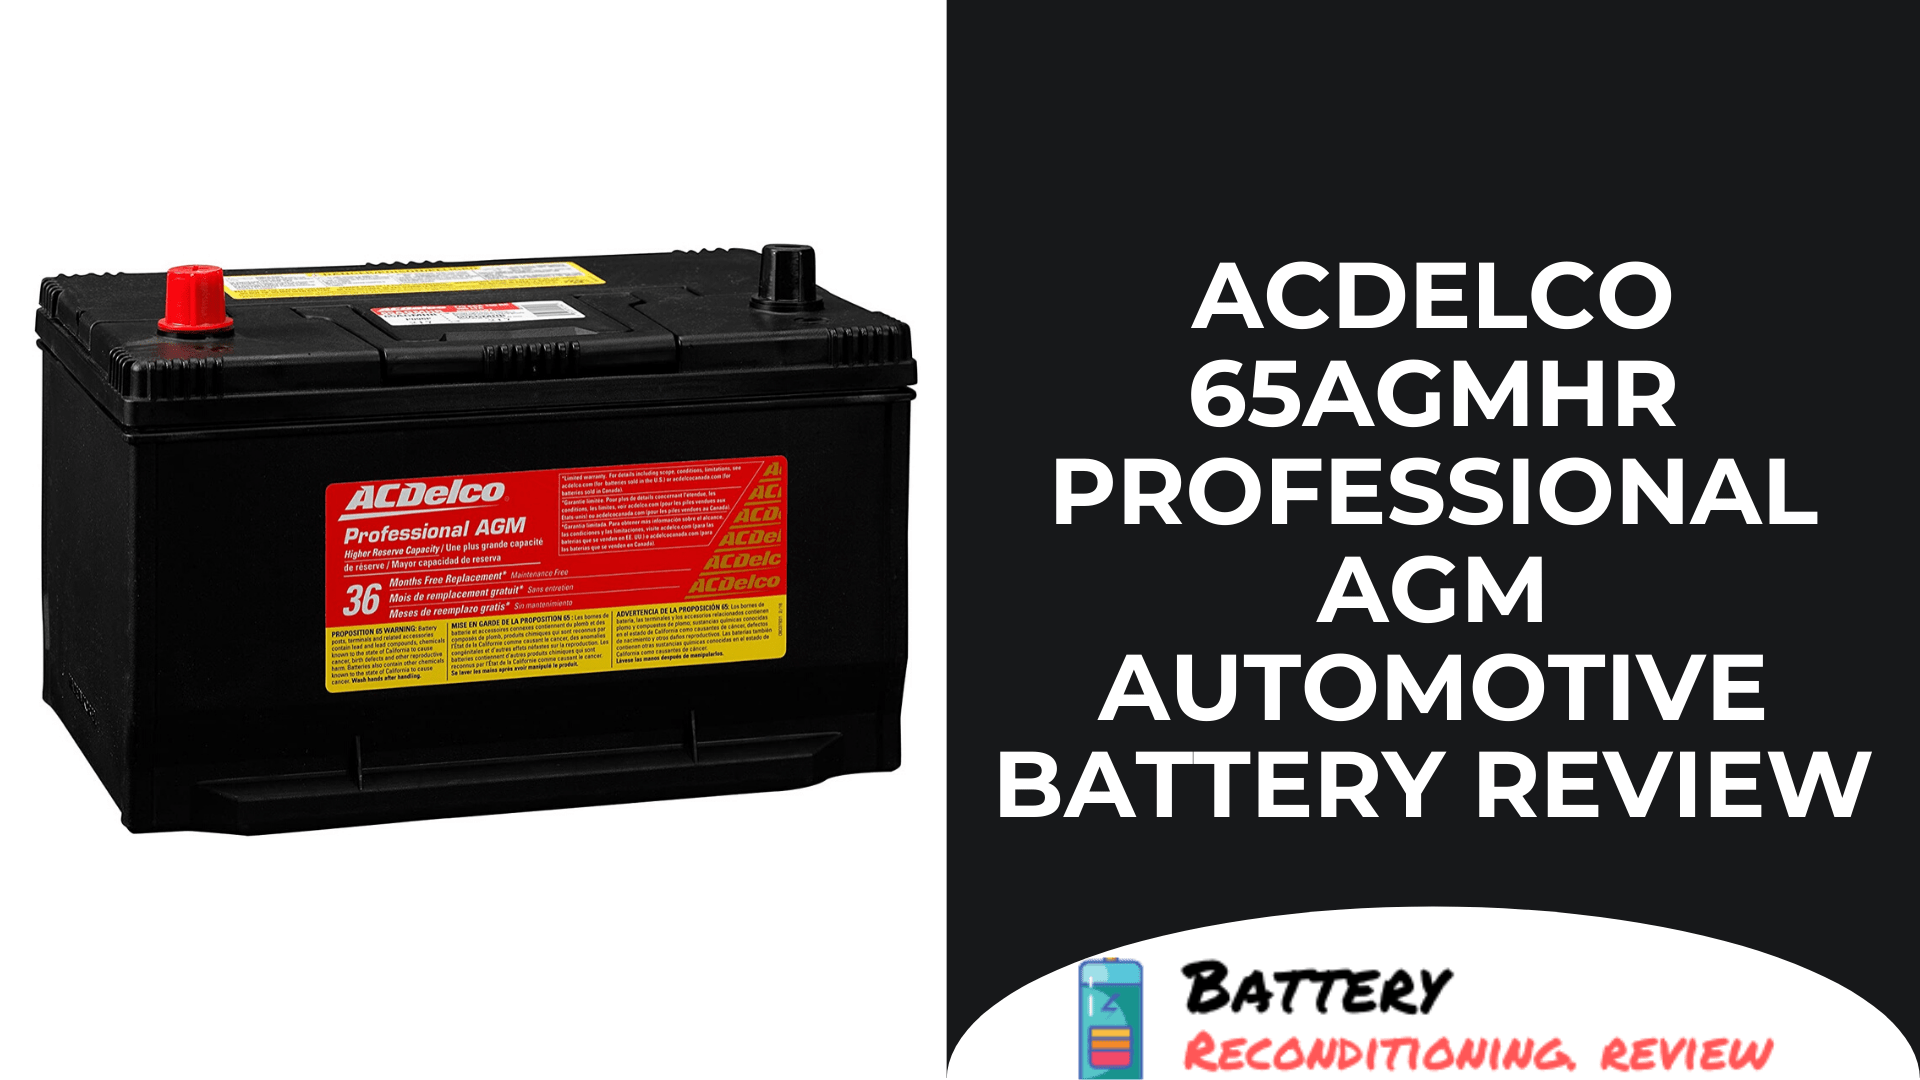 ACDelco 65AGMHR Professional AGM Automotive Battery Review